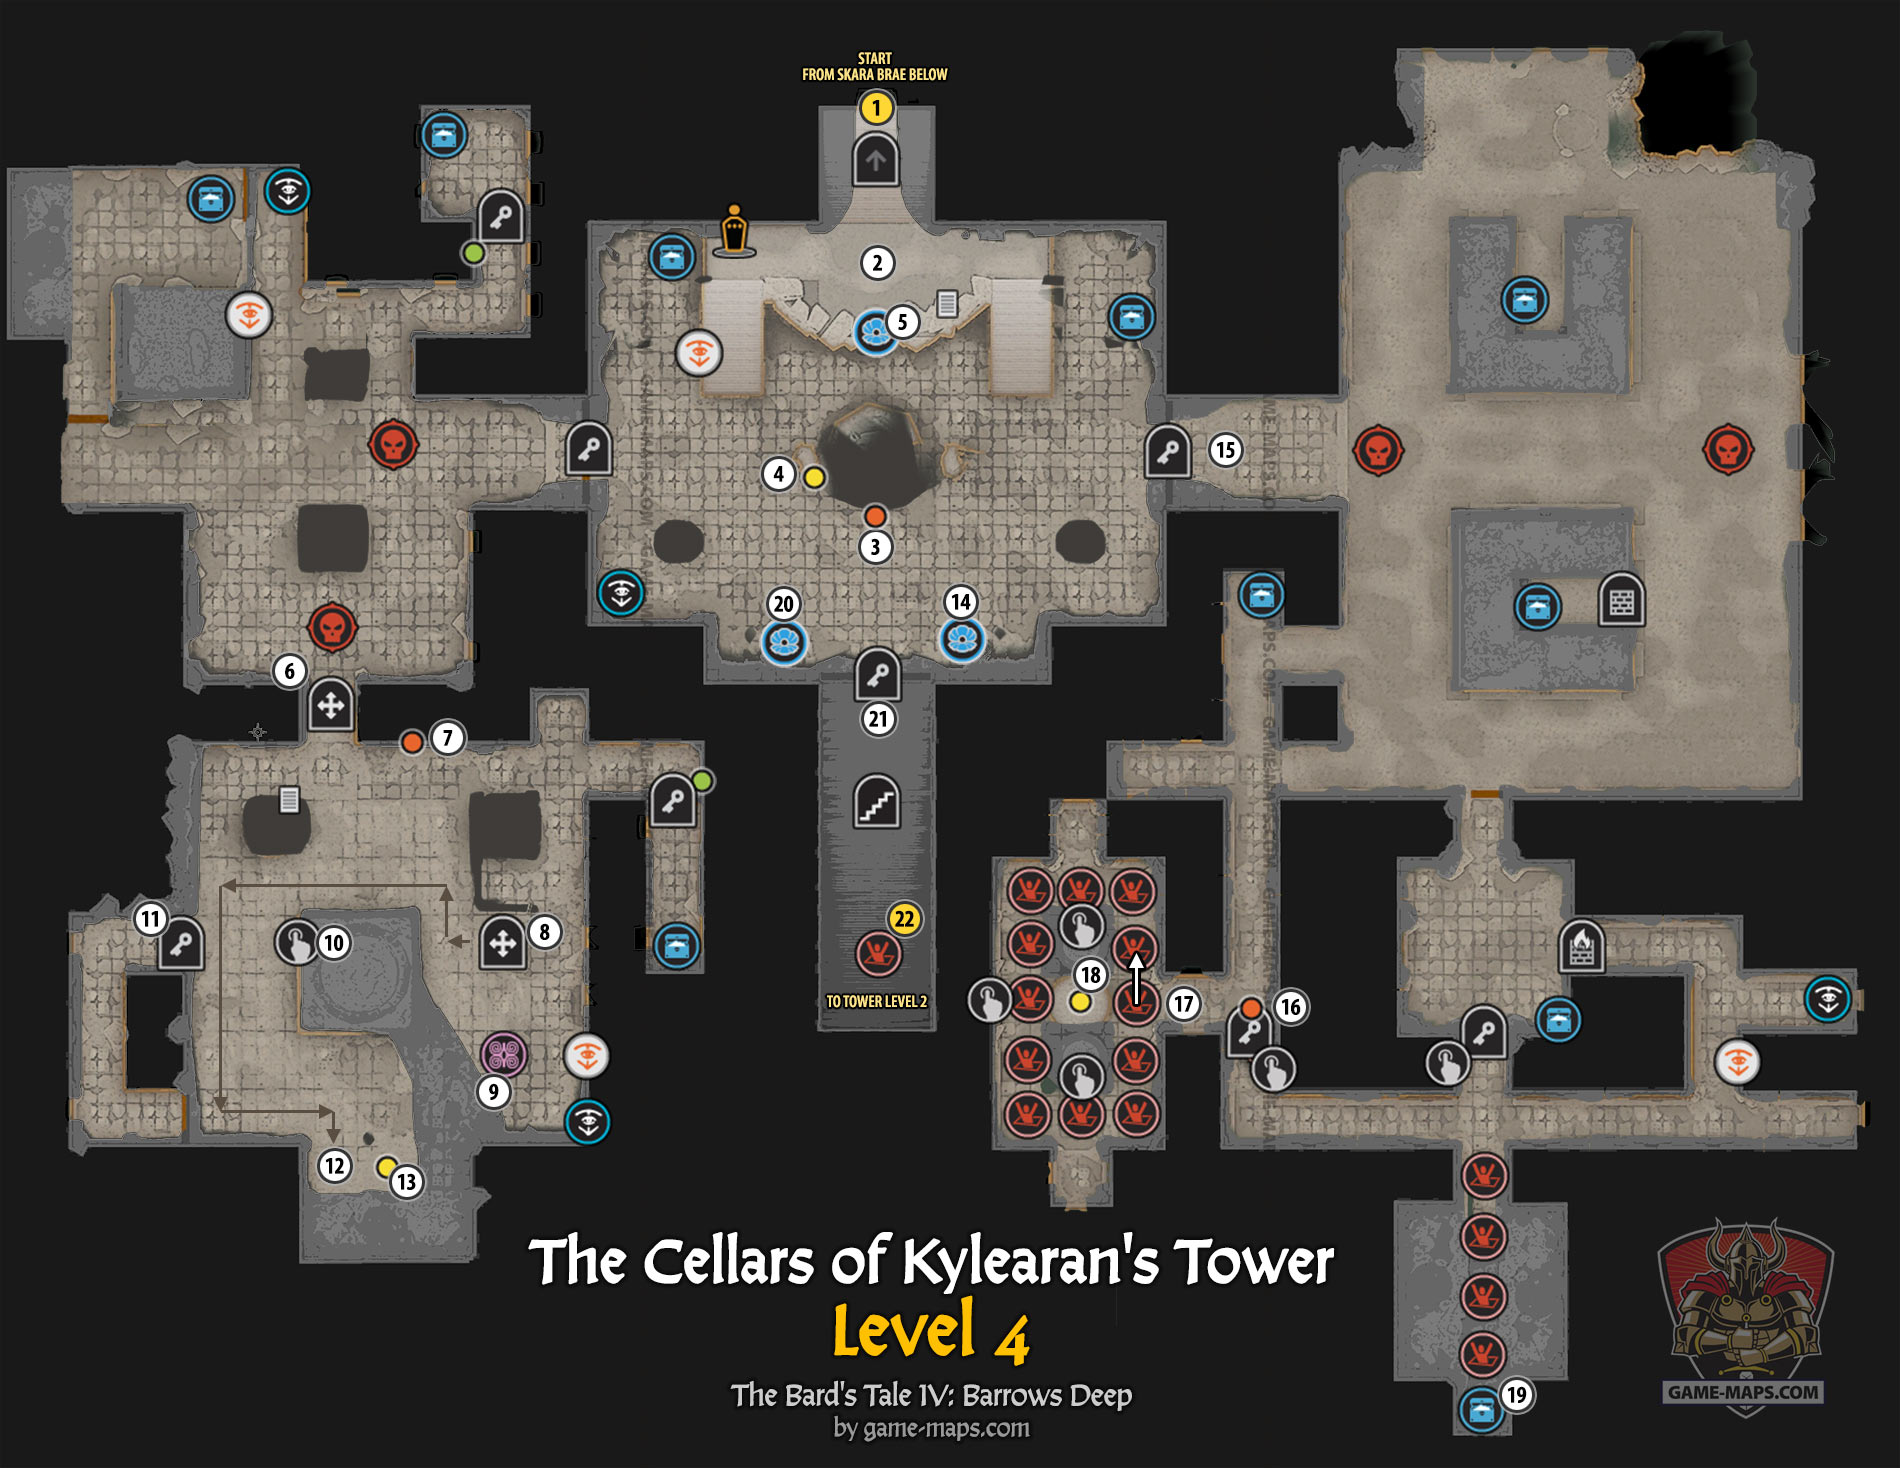 The Cellars of Kylearan's Tower Level 4 Map | game-maps com